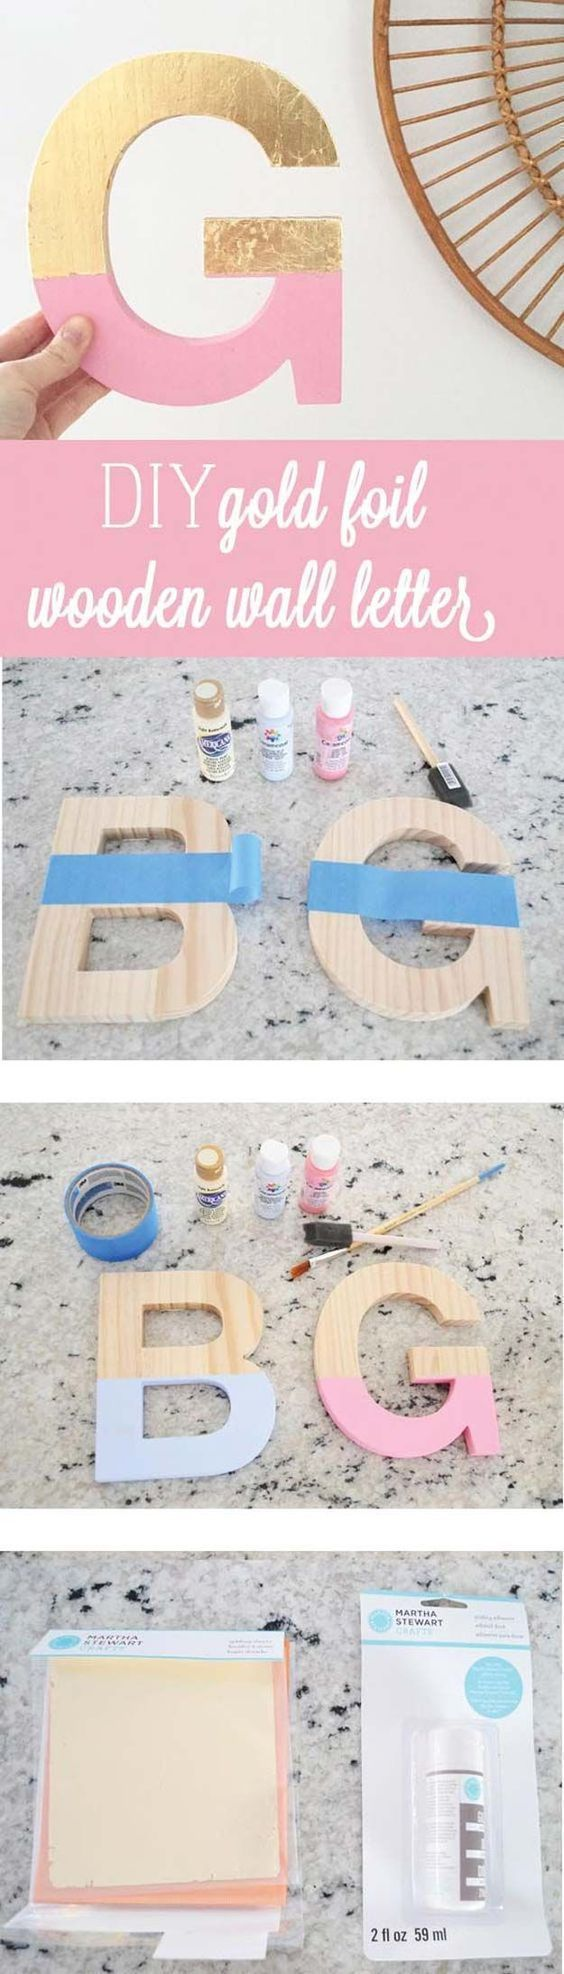 Pink DIY Room Decor Ideas - DIY Gold Foil Letter Art - Cool Pink Bedroom Crafts and Projects for Teens, Girls, Teenagers and Adults - Best Wall Art Ideas, Room Decorating Project Tutorials, Rugs, Lighting and Lamps, Bed Decor and Pillows http://diyproject #BeddingIdeasForTeenGirls #artsandcraftslamp